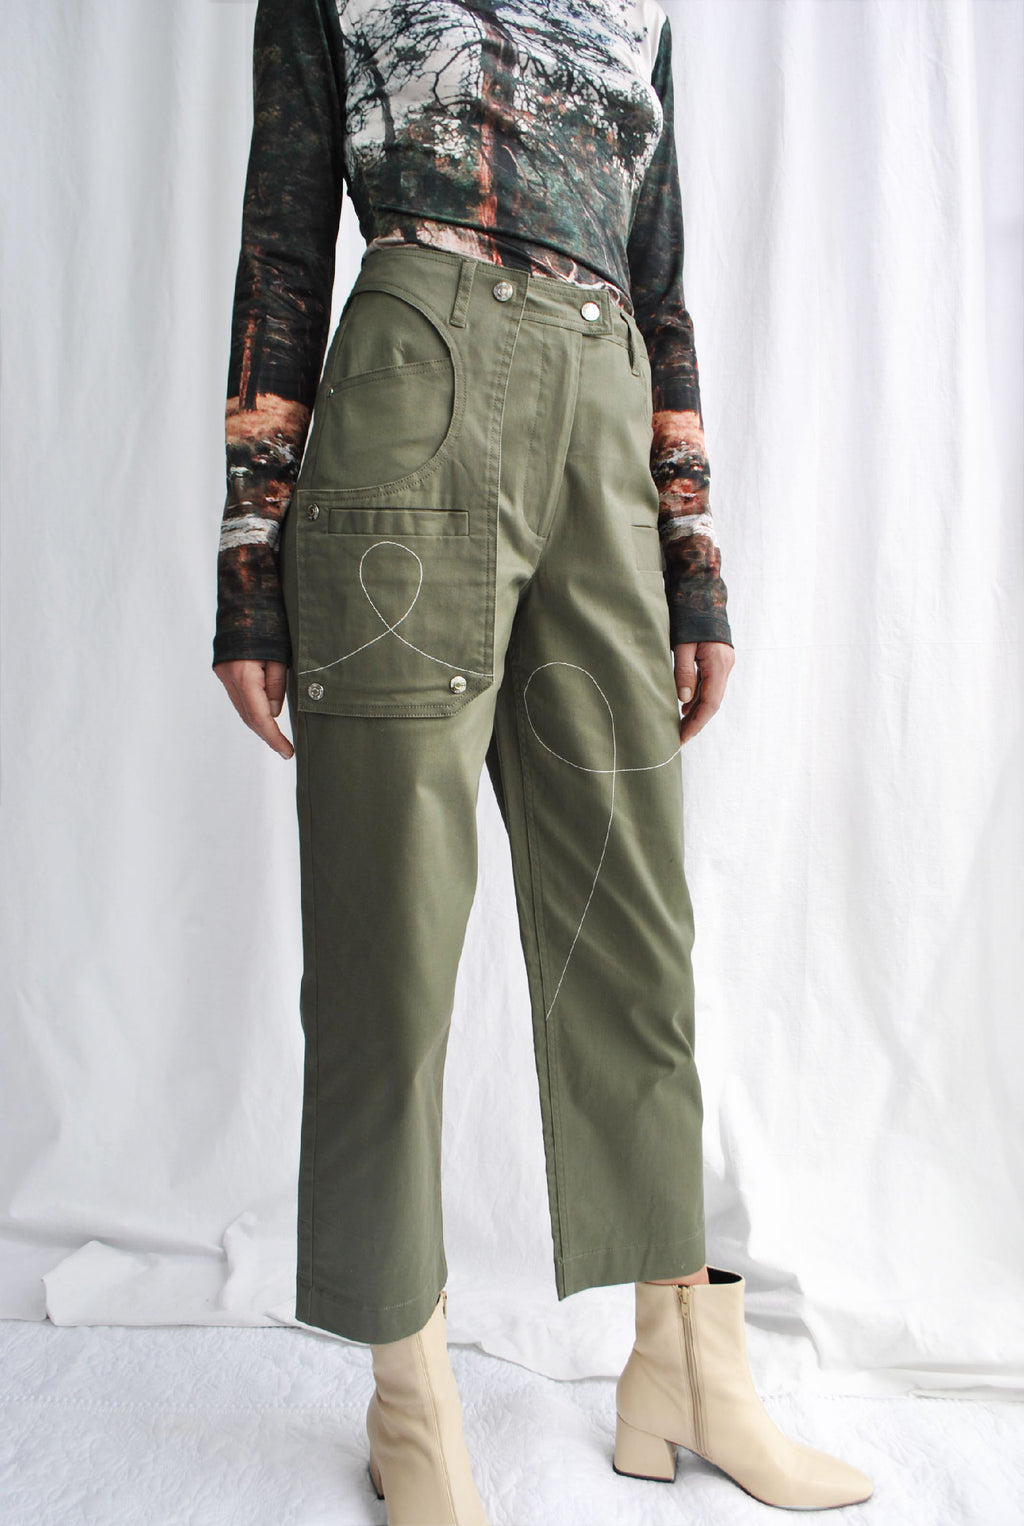 The 70/30 Cargo Pant